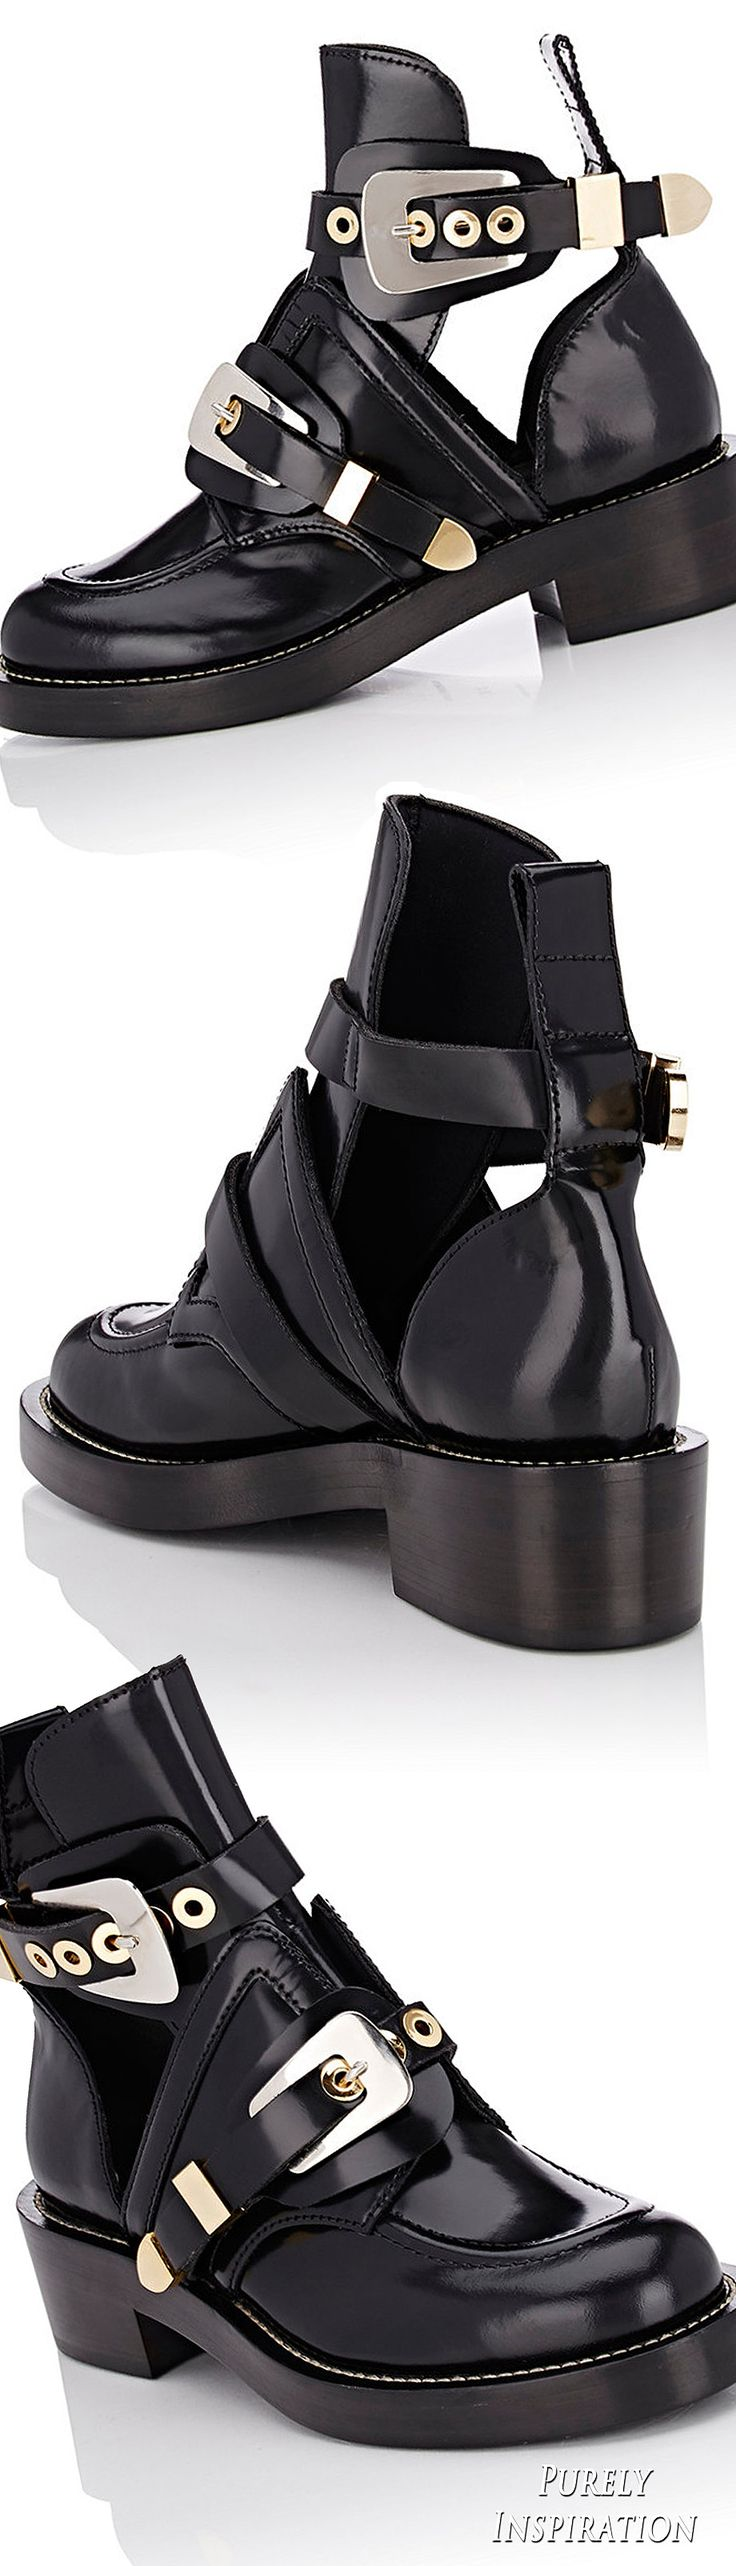 Balenciaga Ceinture Ankle Boots | Purely Inspiration